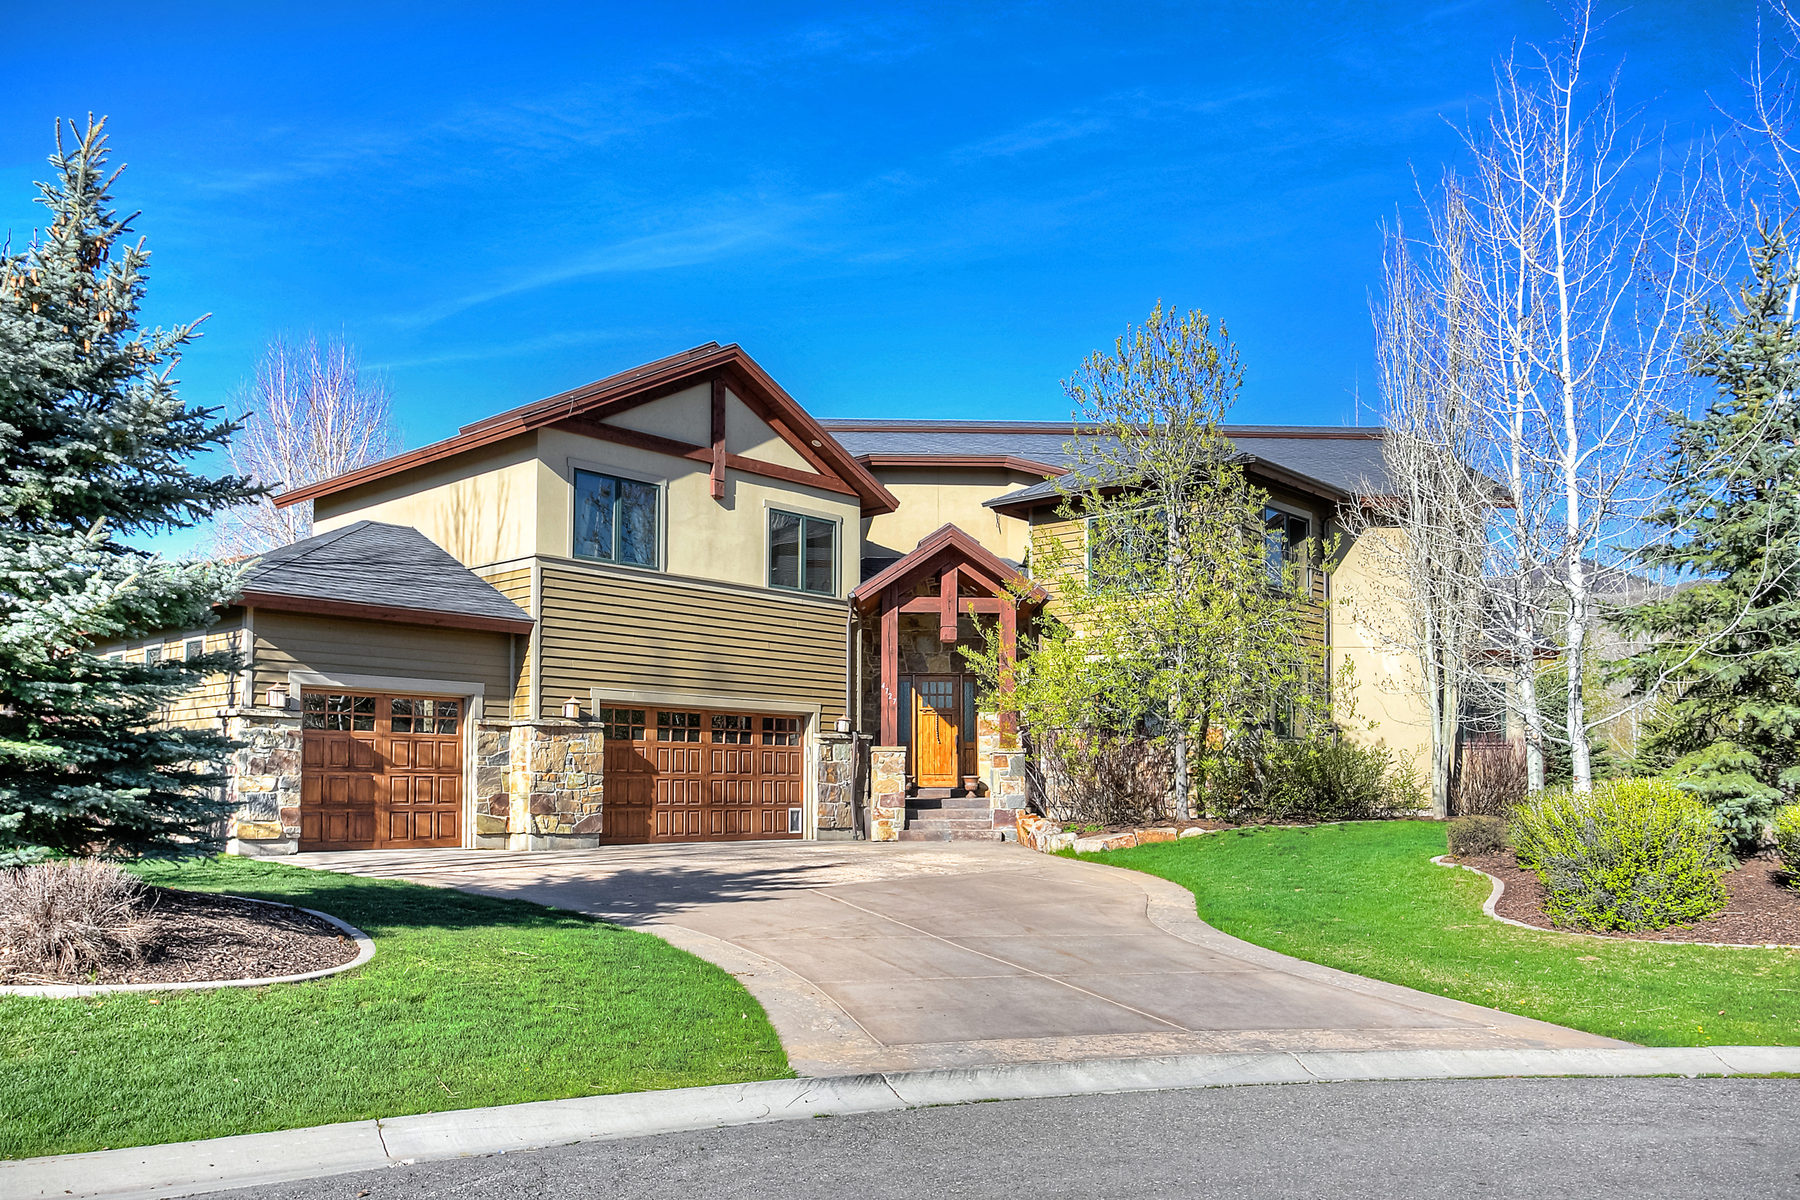 Single Family Home for Sale at Panoramic Views, Convenient Location 4727 Pace Dr Park City, Utah 84098 United States